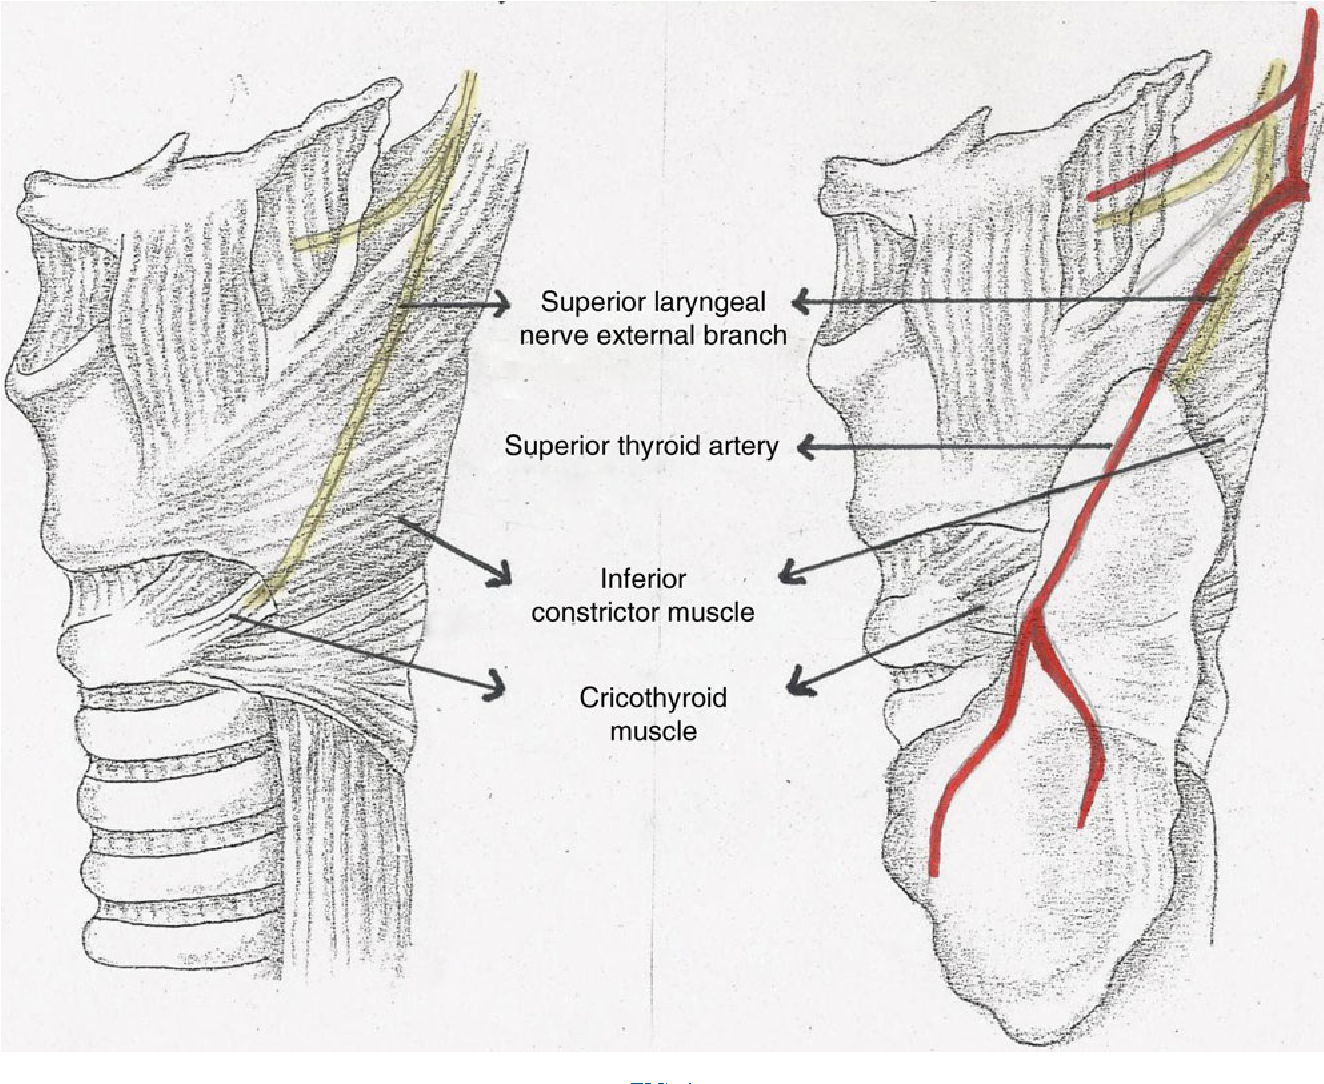 Anatomical Variations Of The External Branch Of The Superior